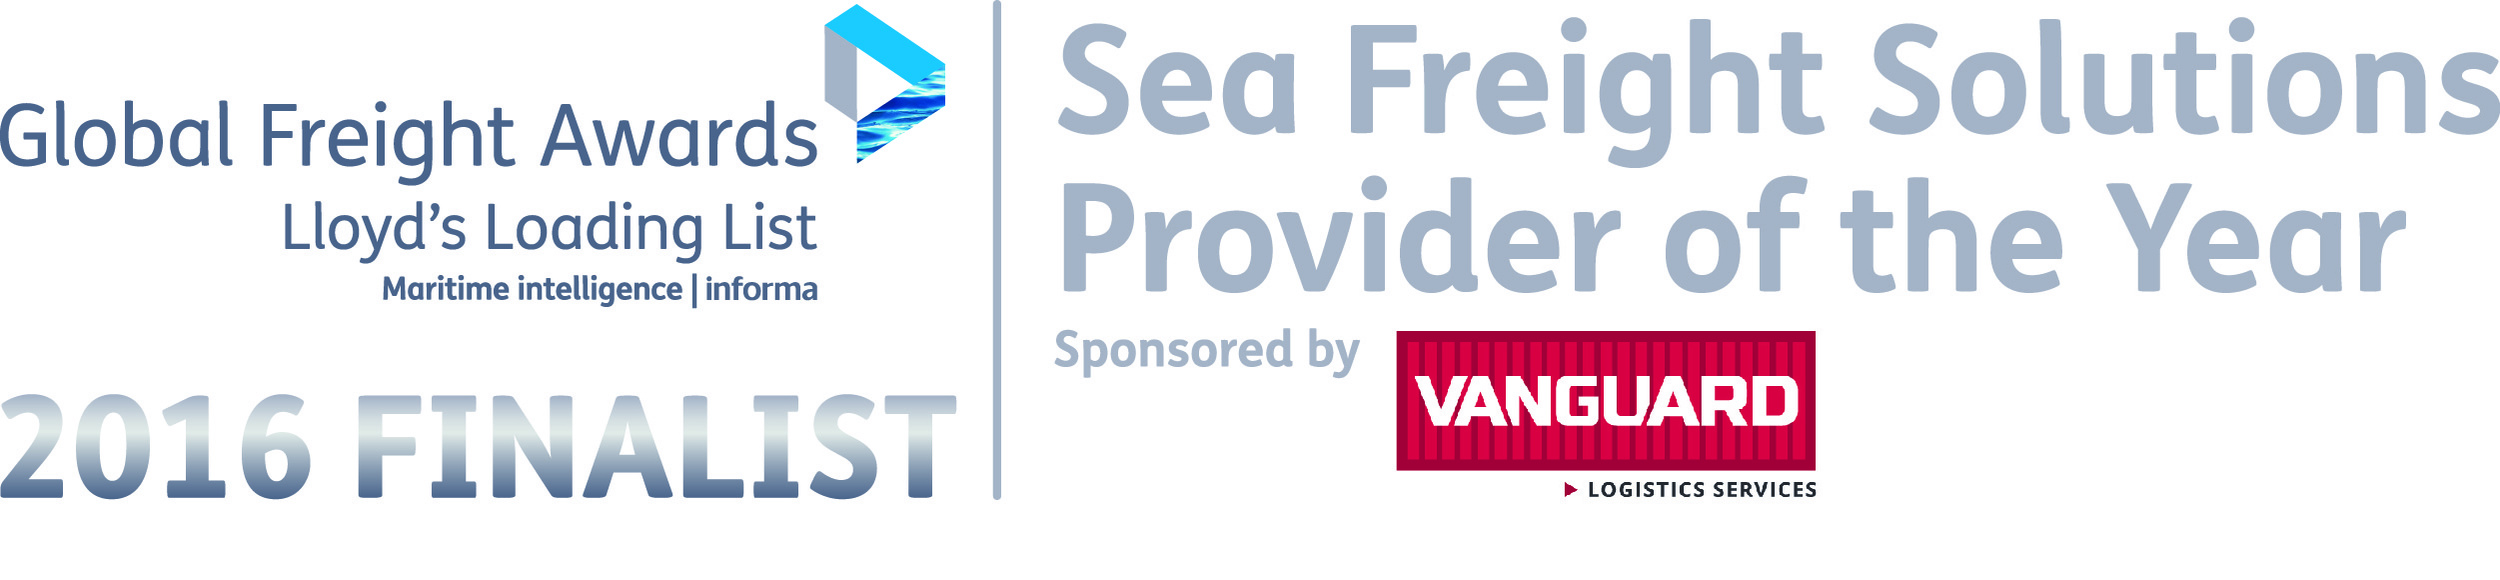 Sea Freight Solutions Provider of the Year